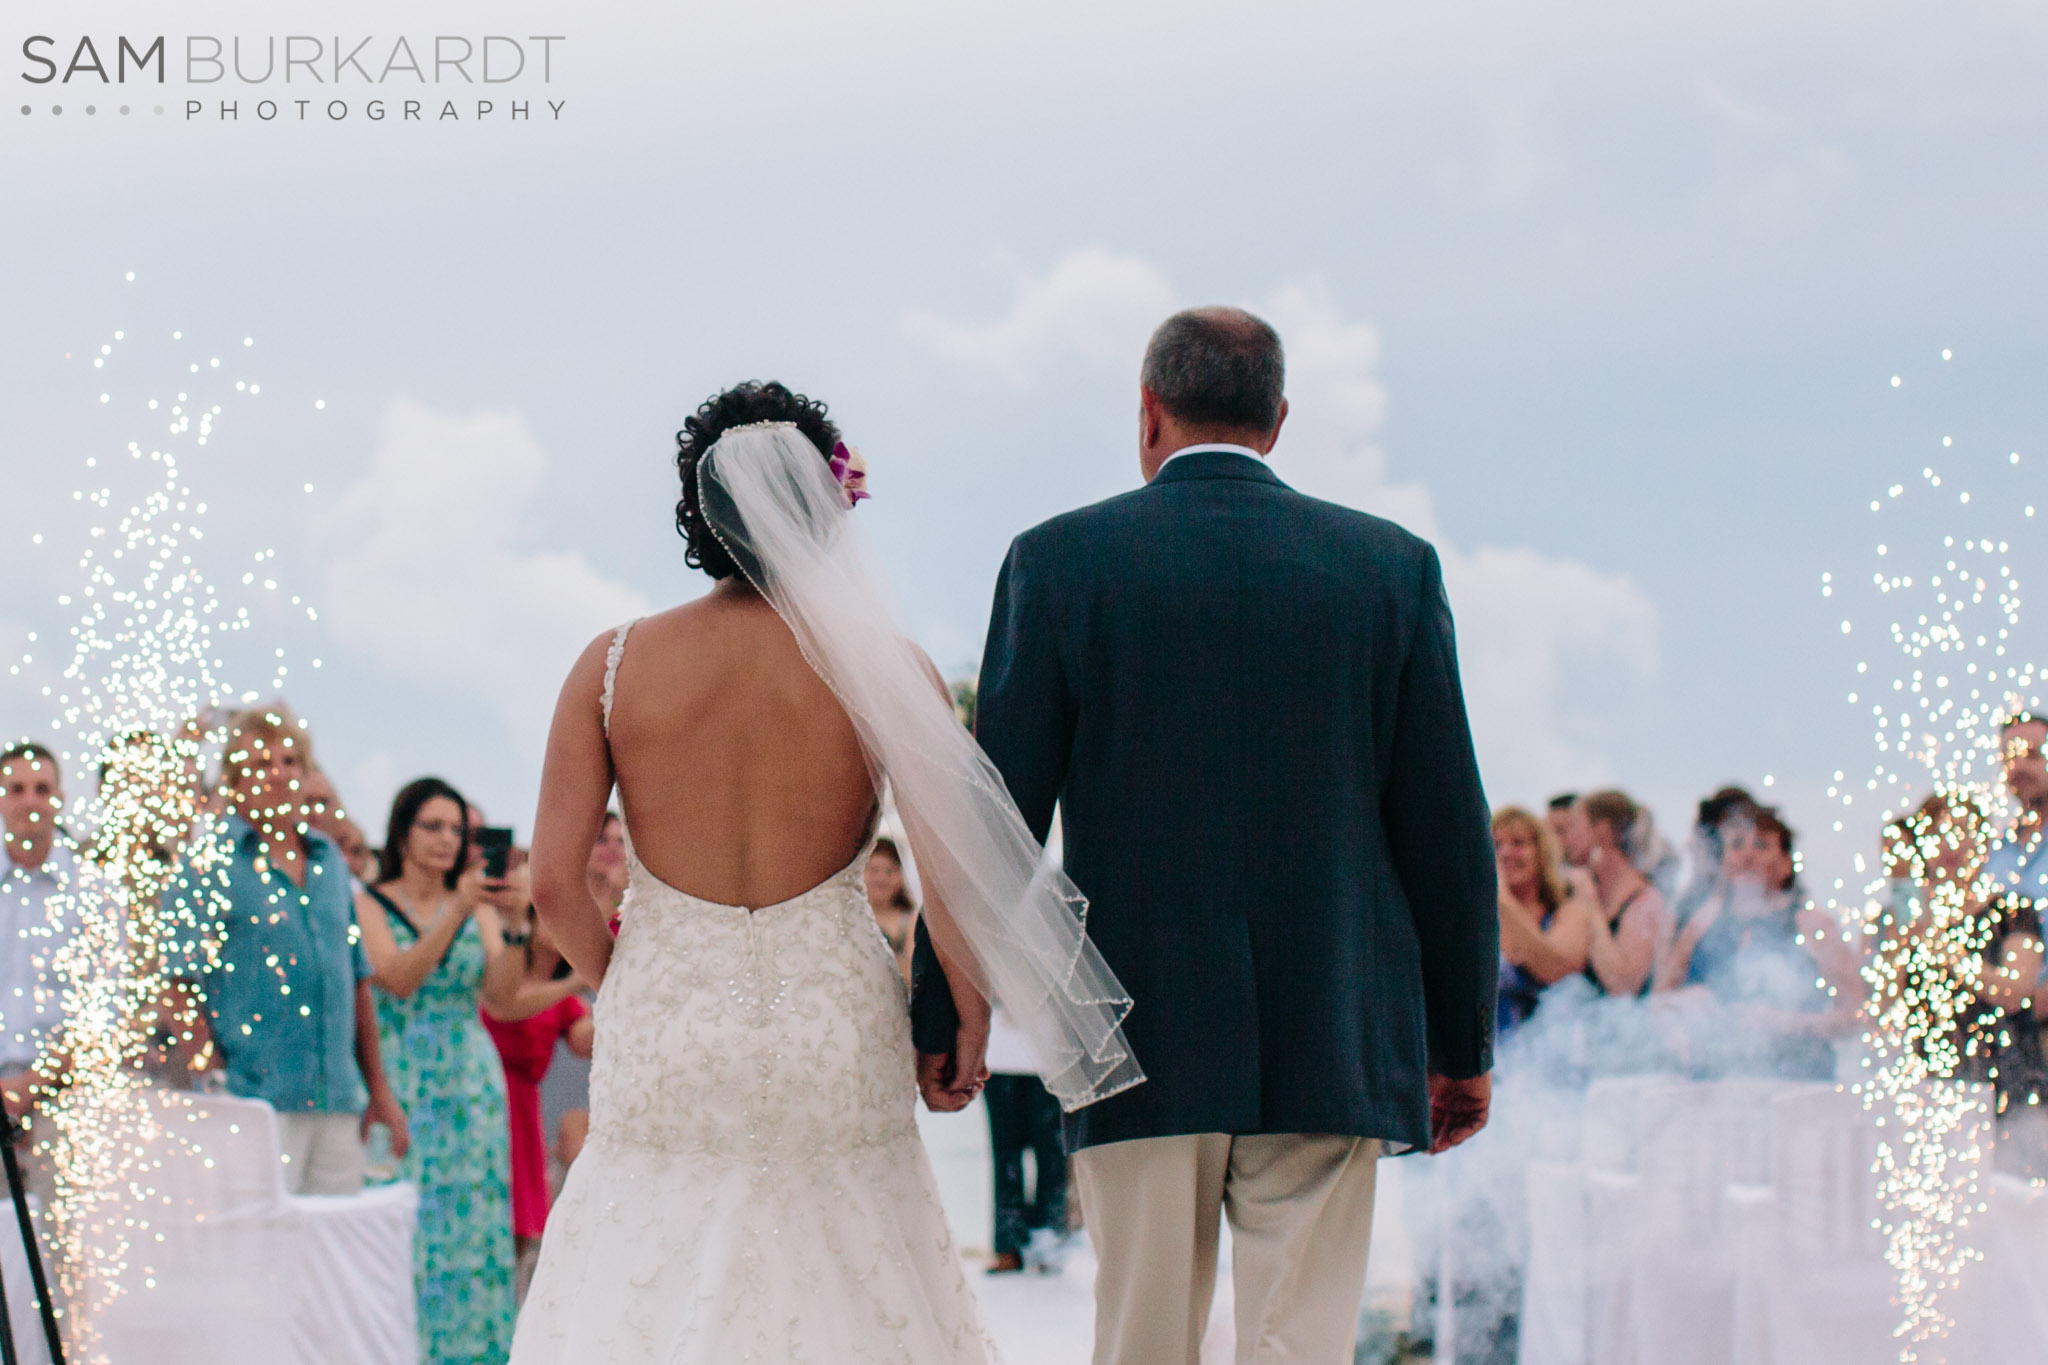 samburkardt-mexico-wedding-beach-0031.jpg